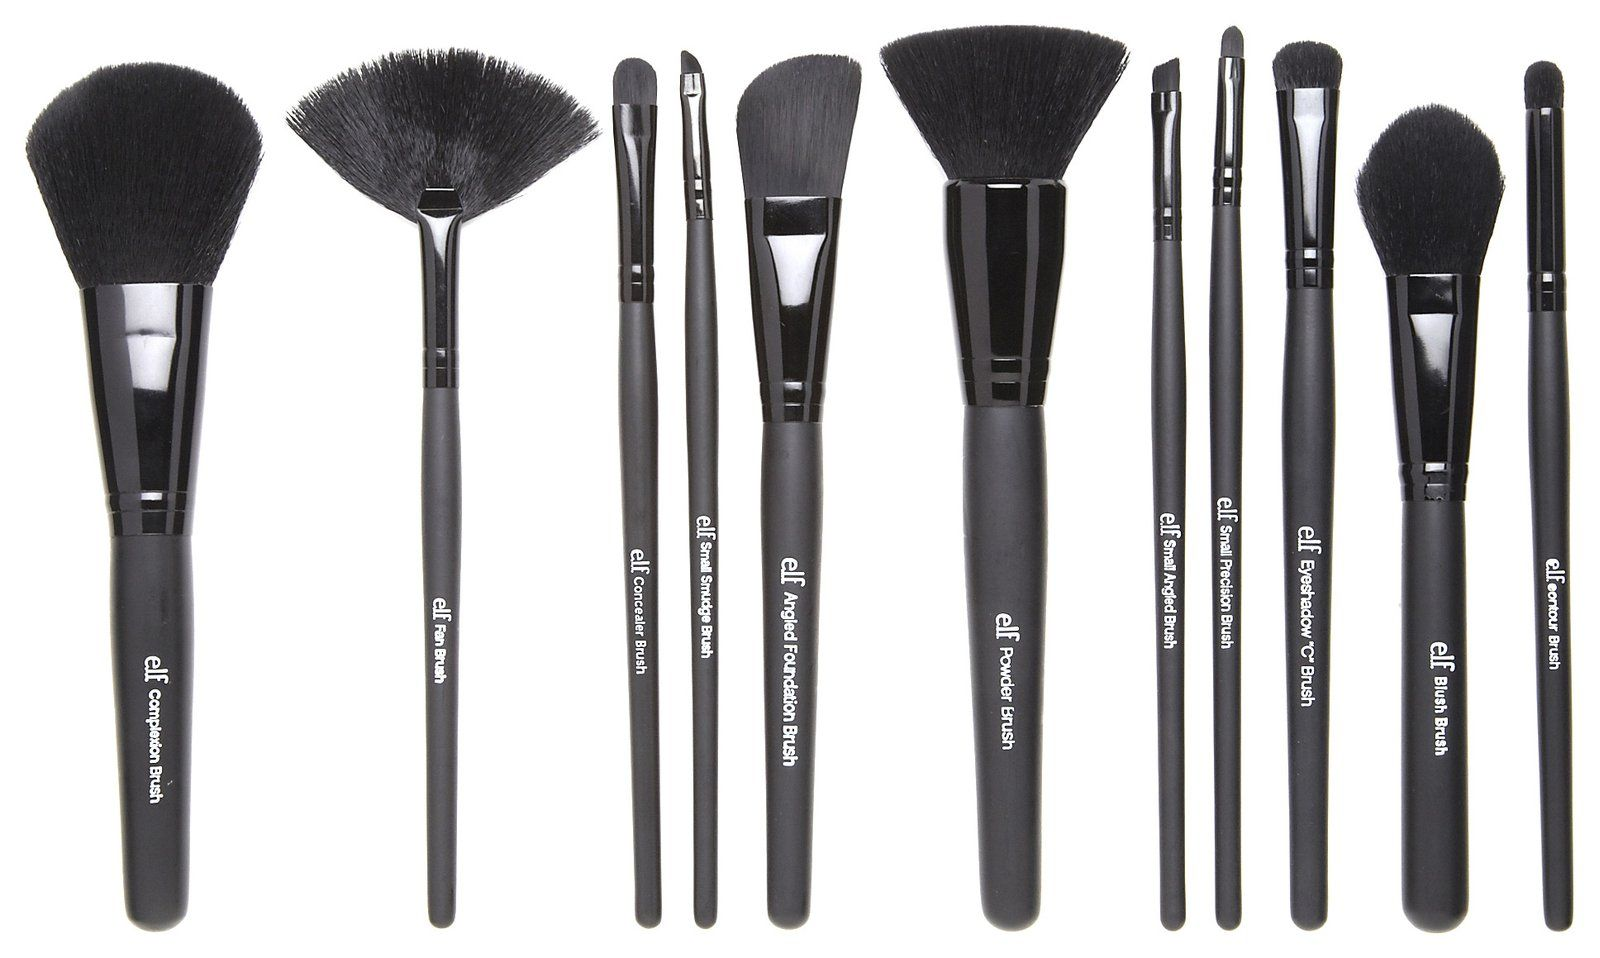 Review e.l.f. Studio Makeup Brushes and